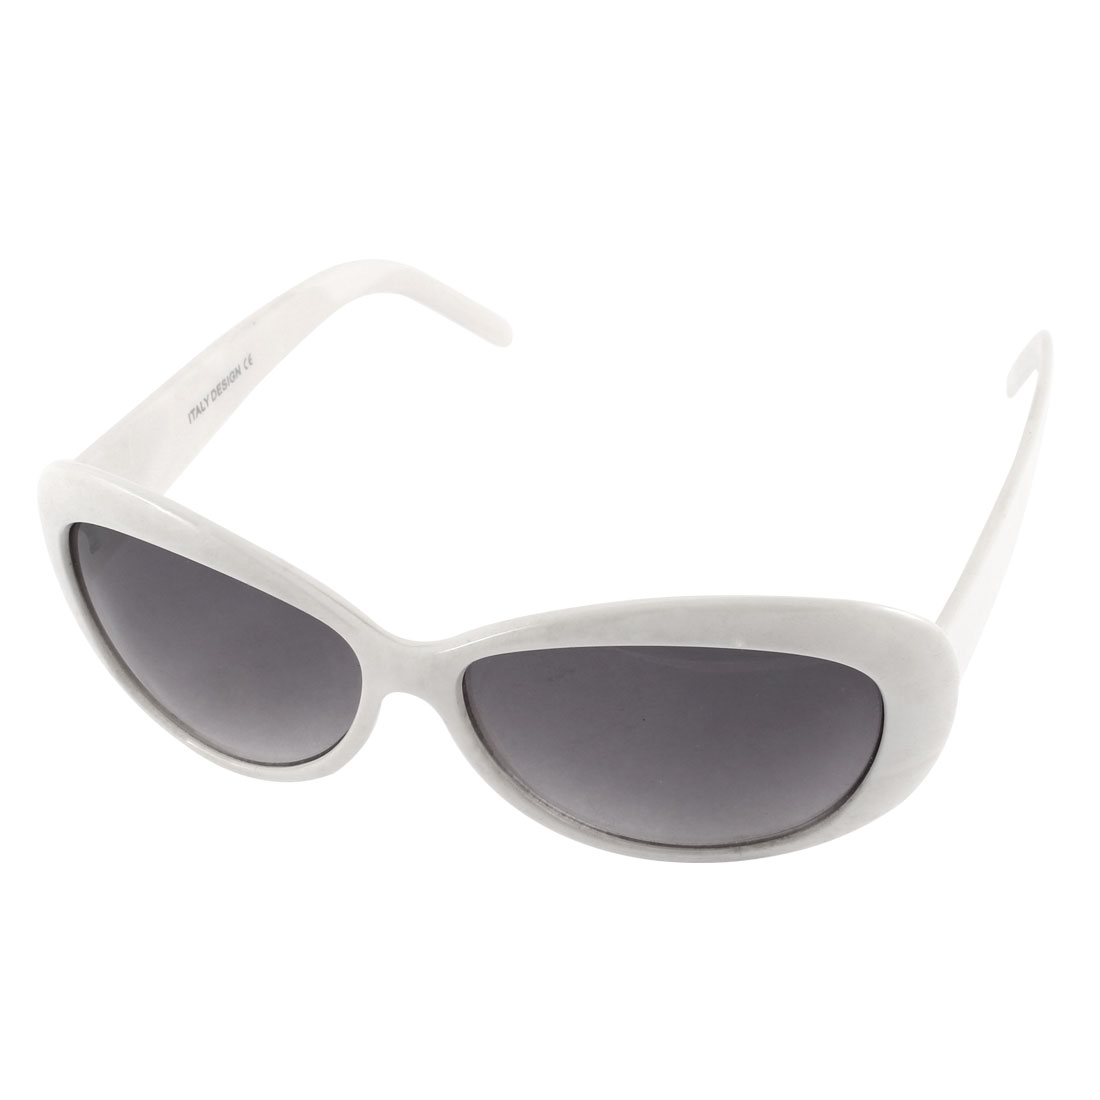 Lady Full Rim Outdoor Protective Spectacles Eyewear Sunglasses White